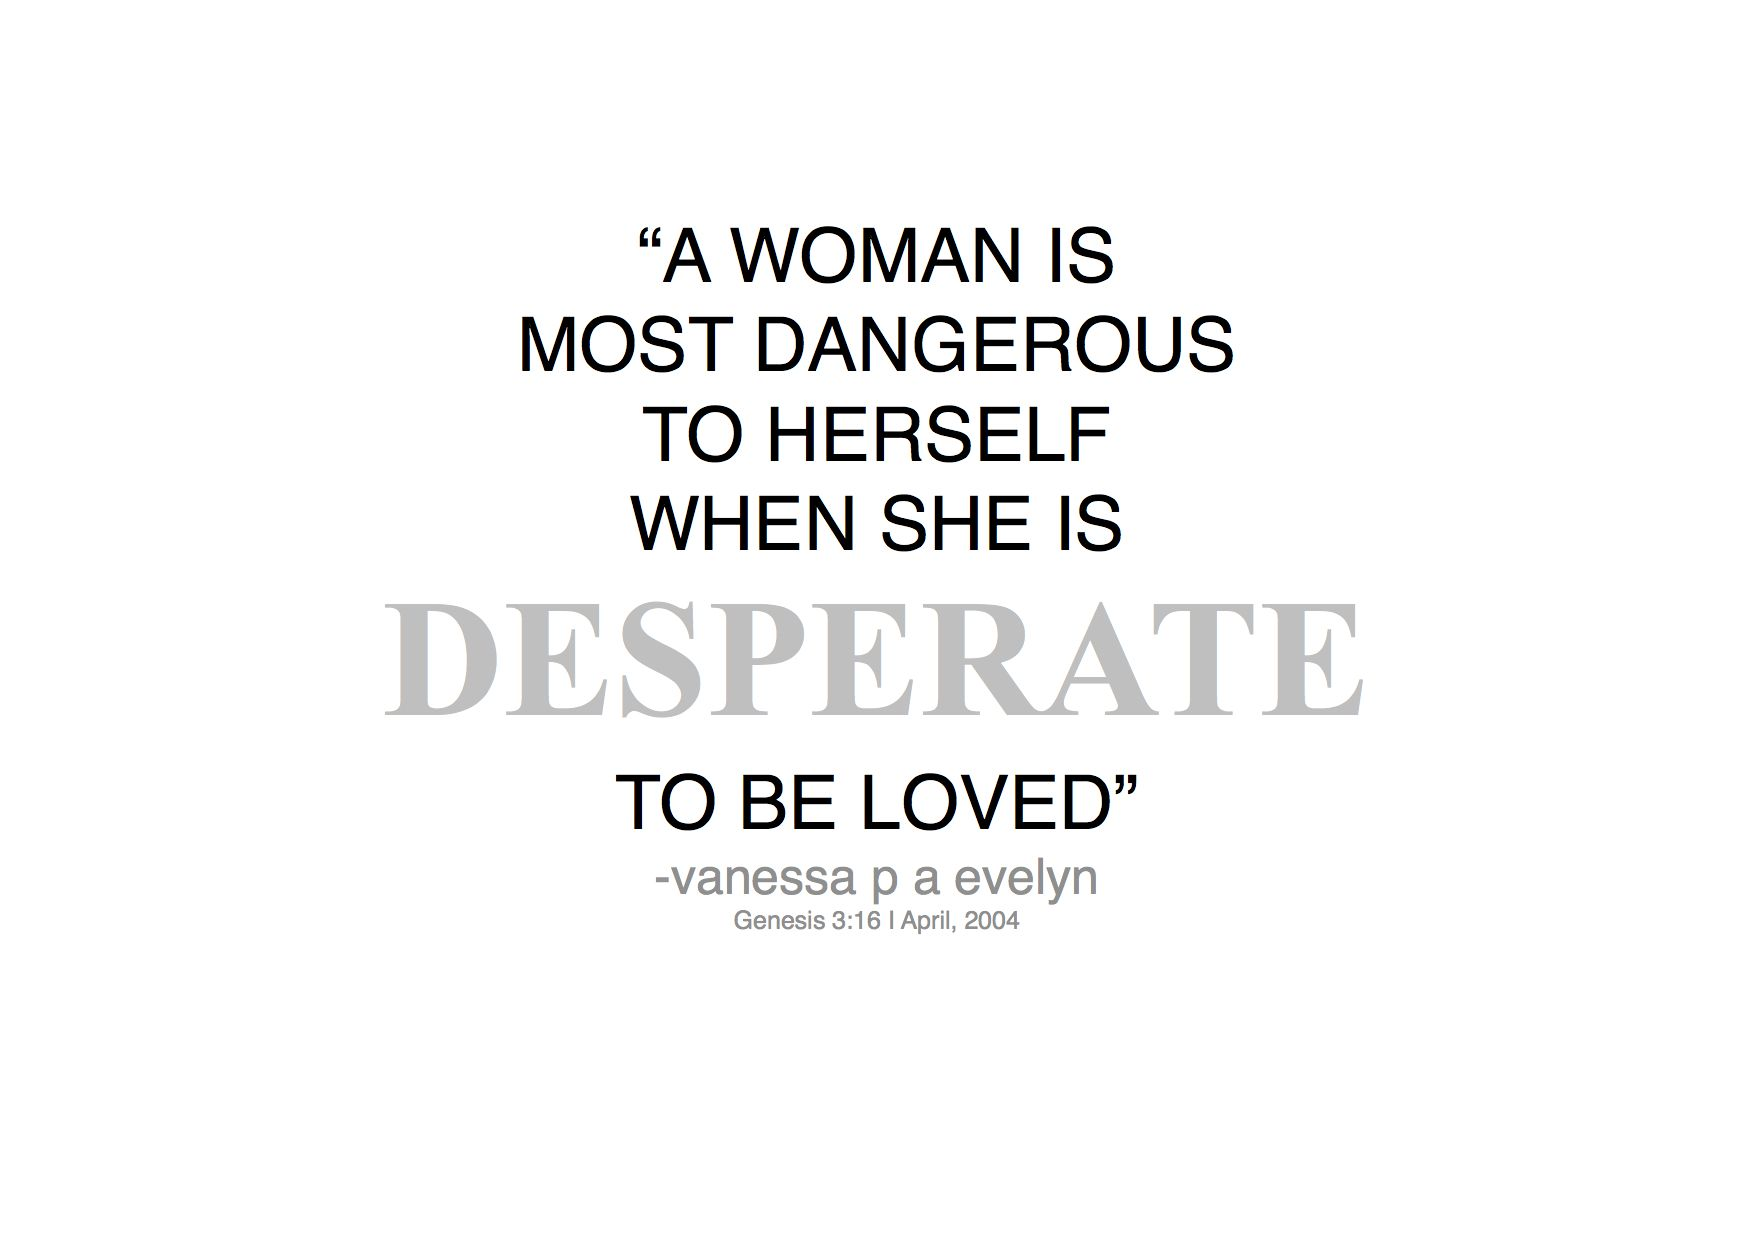 Desperate Vanessapaevelynquotes Quotes Woman Love Dangerous A Woman Is Most Dangerous When She Quoted By Desperate Quotes Quotes Meaningful Quotes